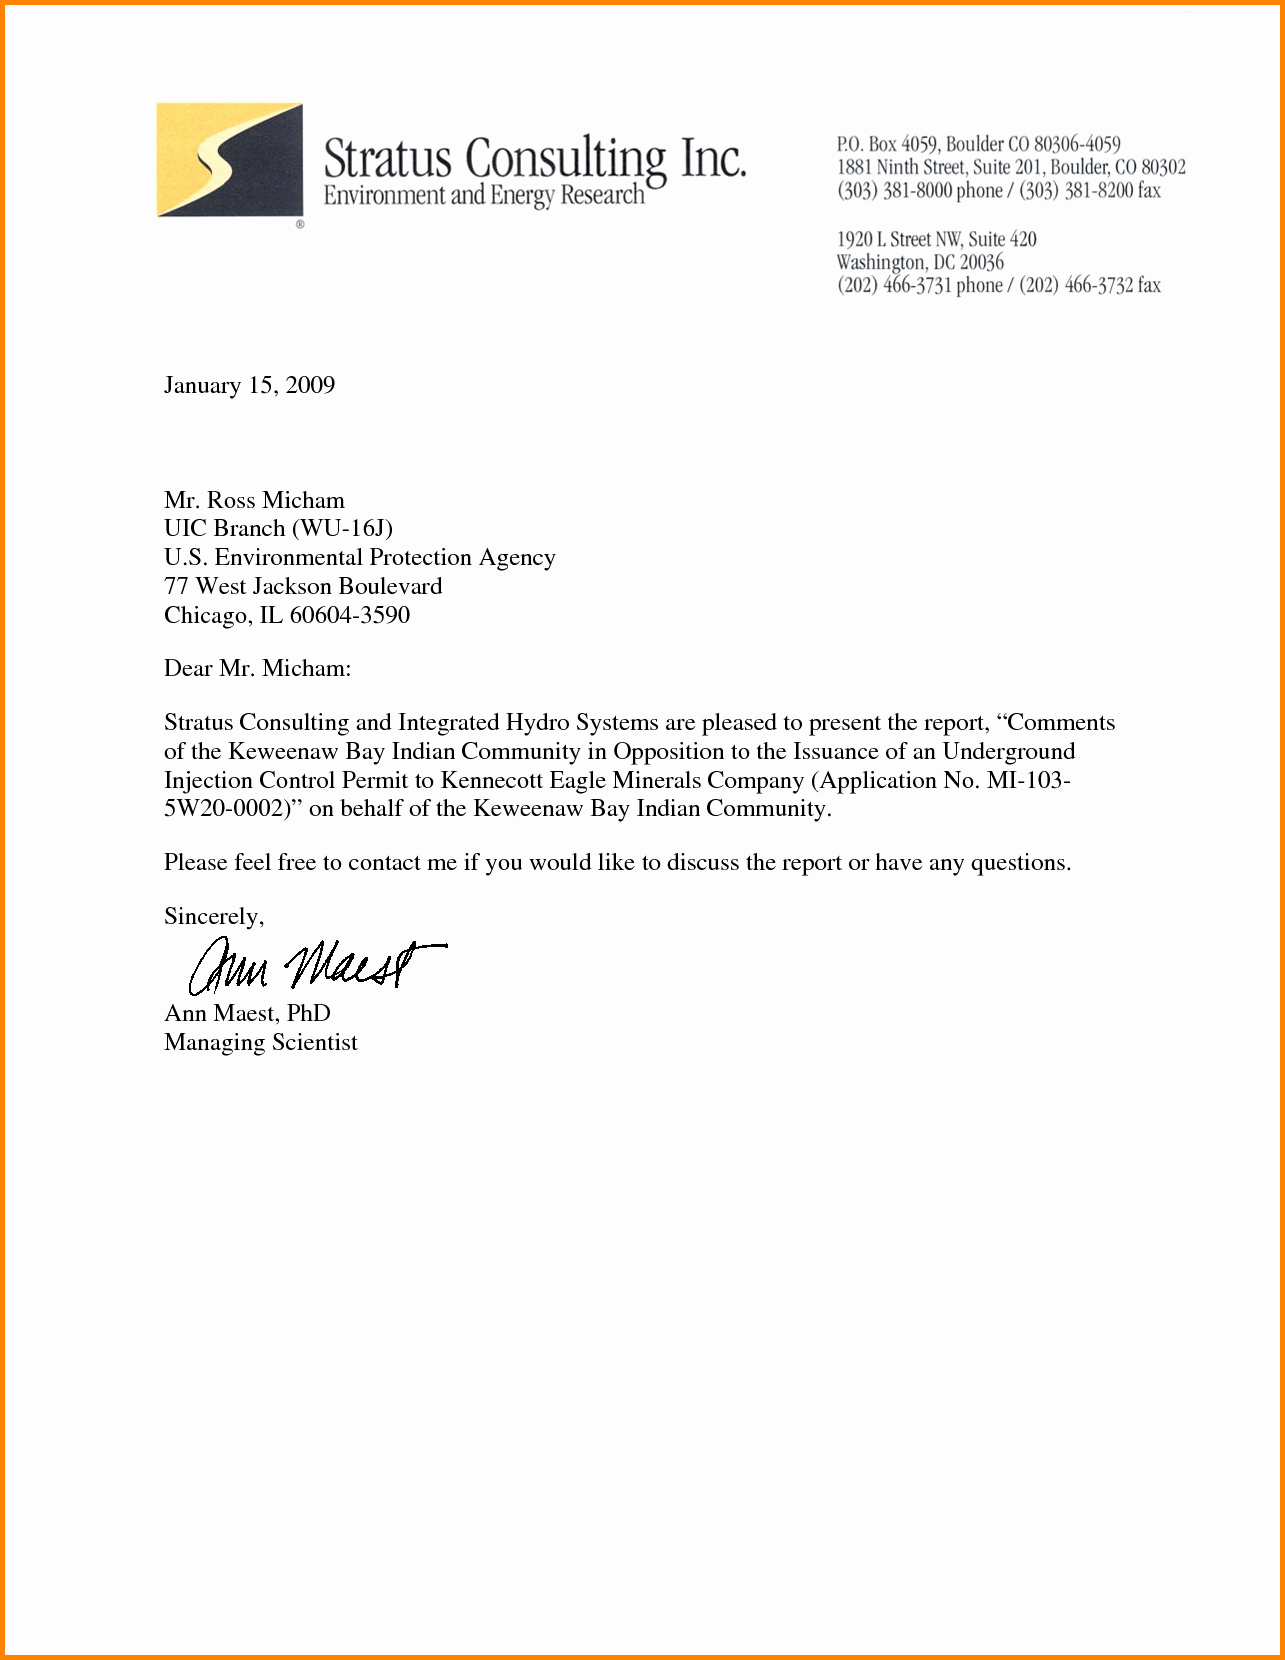 Business Letter Template Word New Business Letter Pany Letterhead Rmat for Word Templates